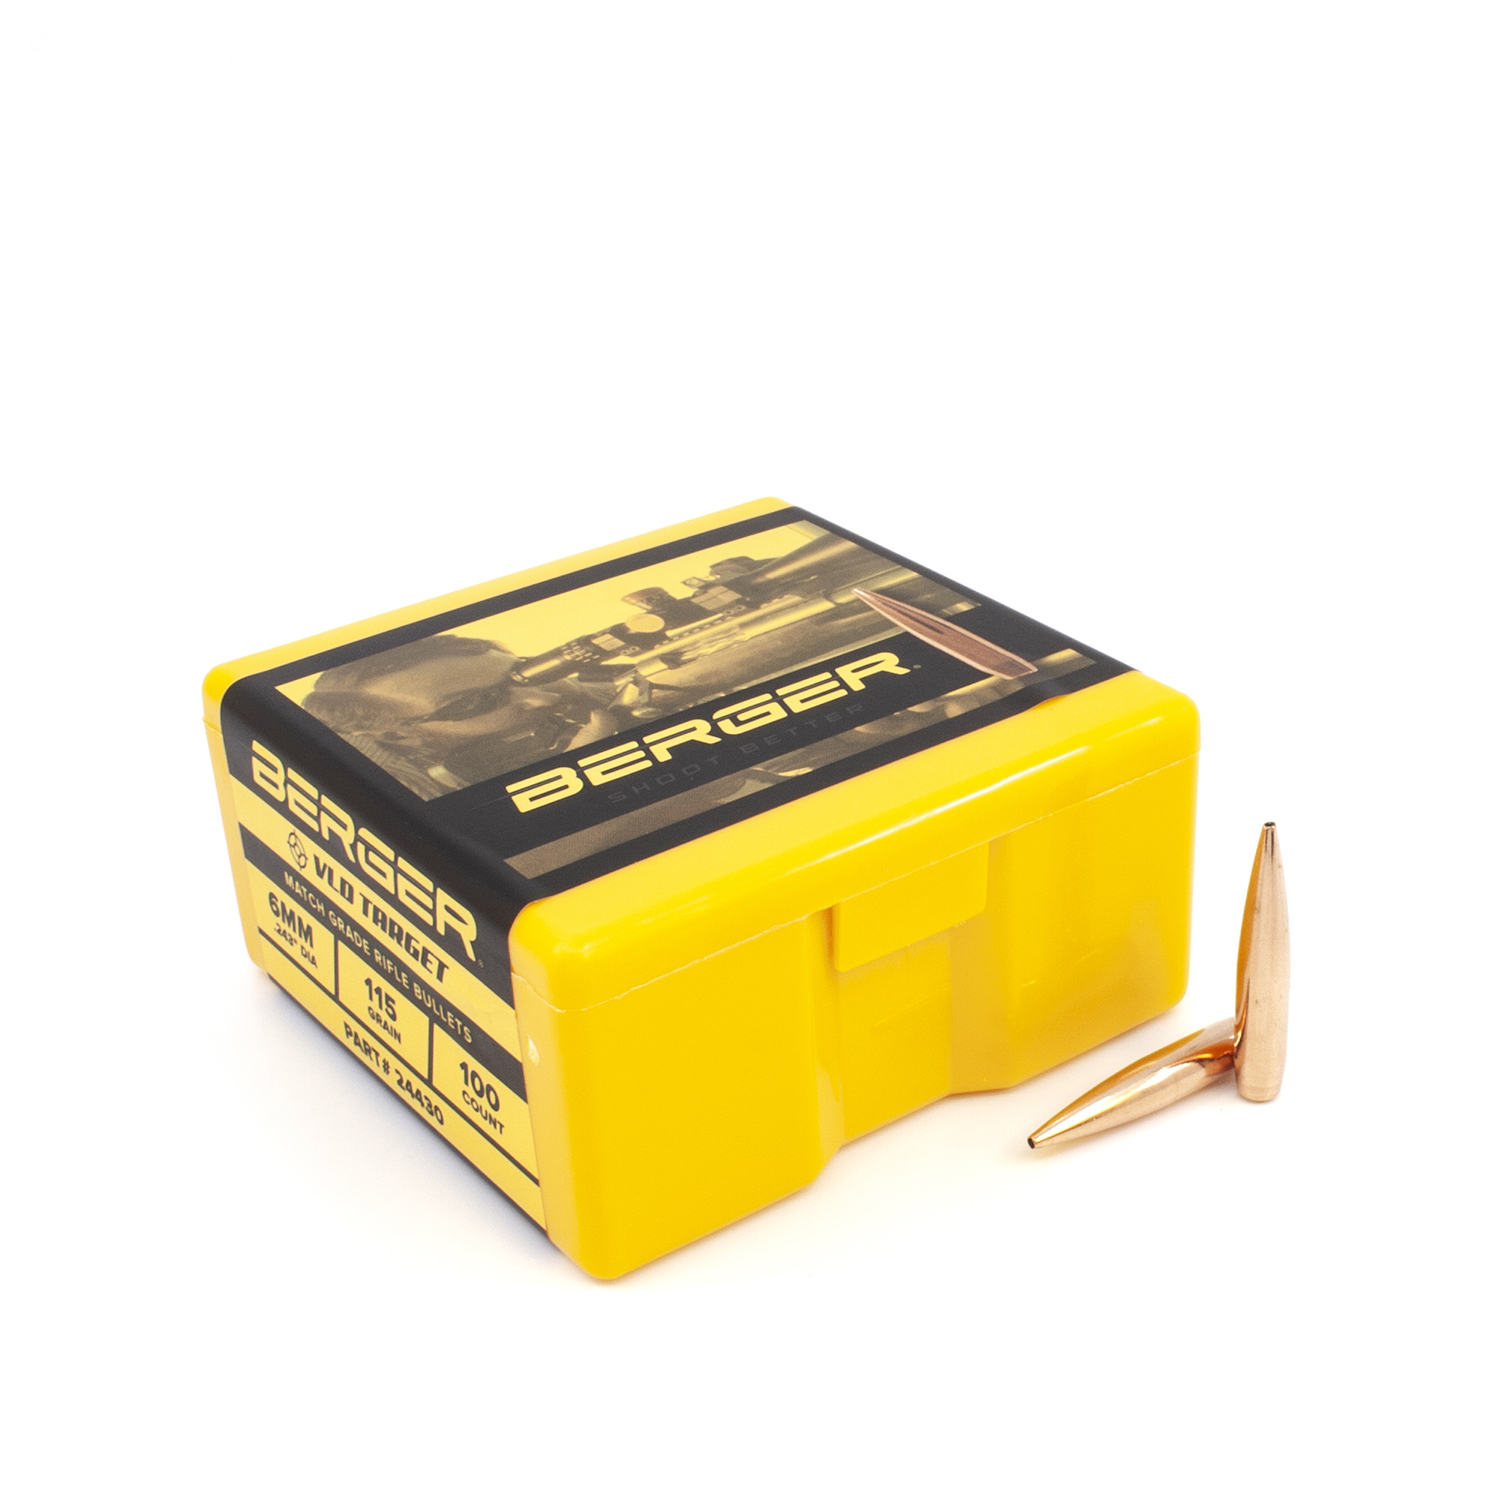 Berger Bullets - 6mm,115 gr. VLD Target - Box of 100